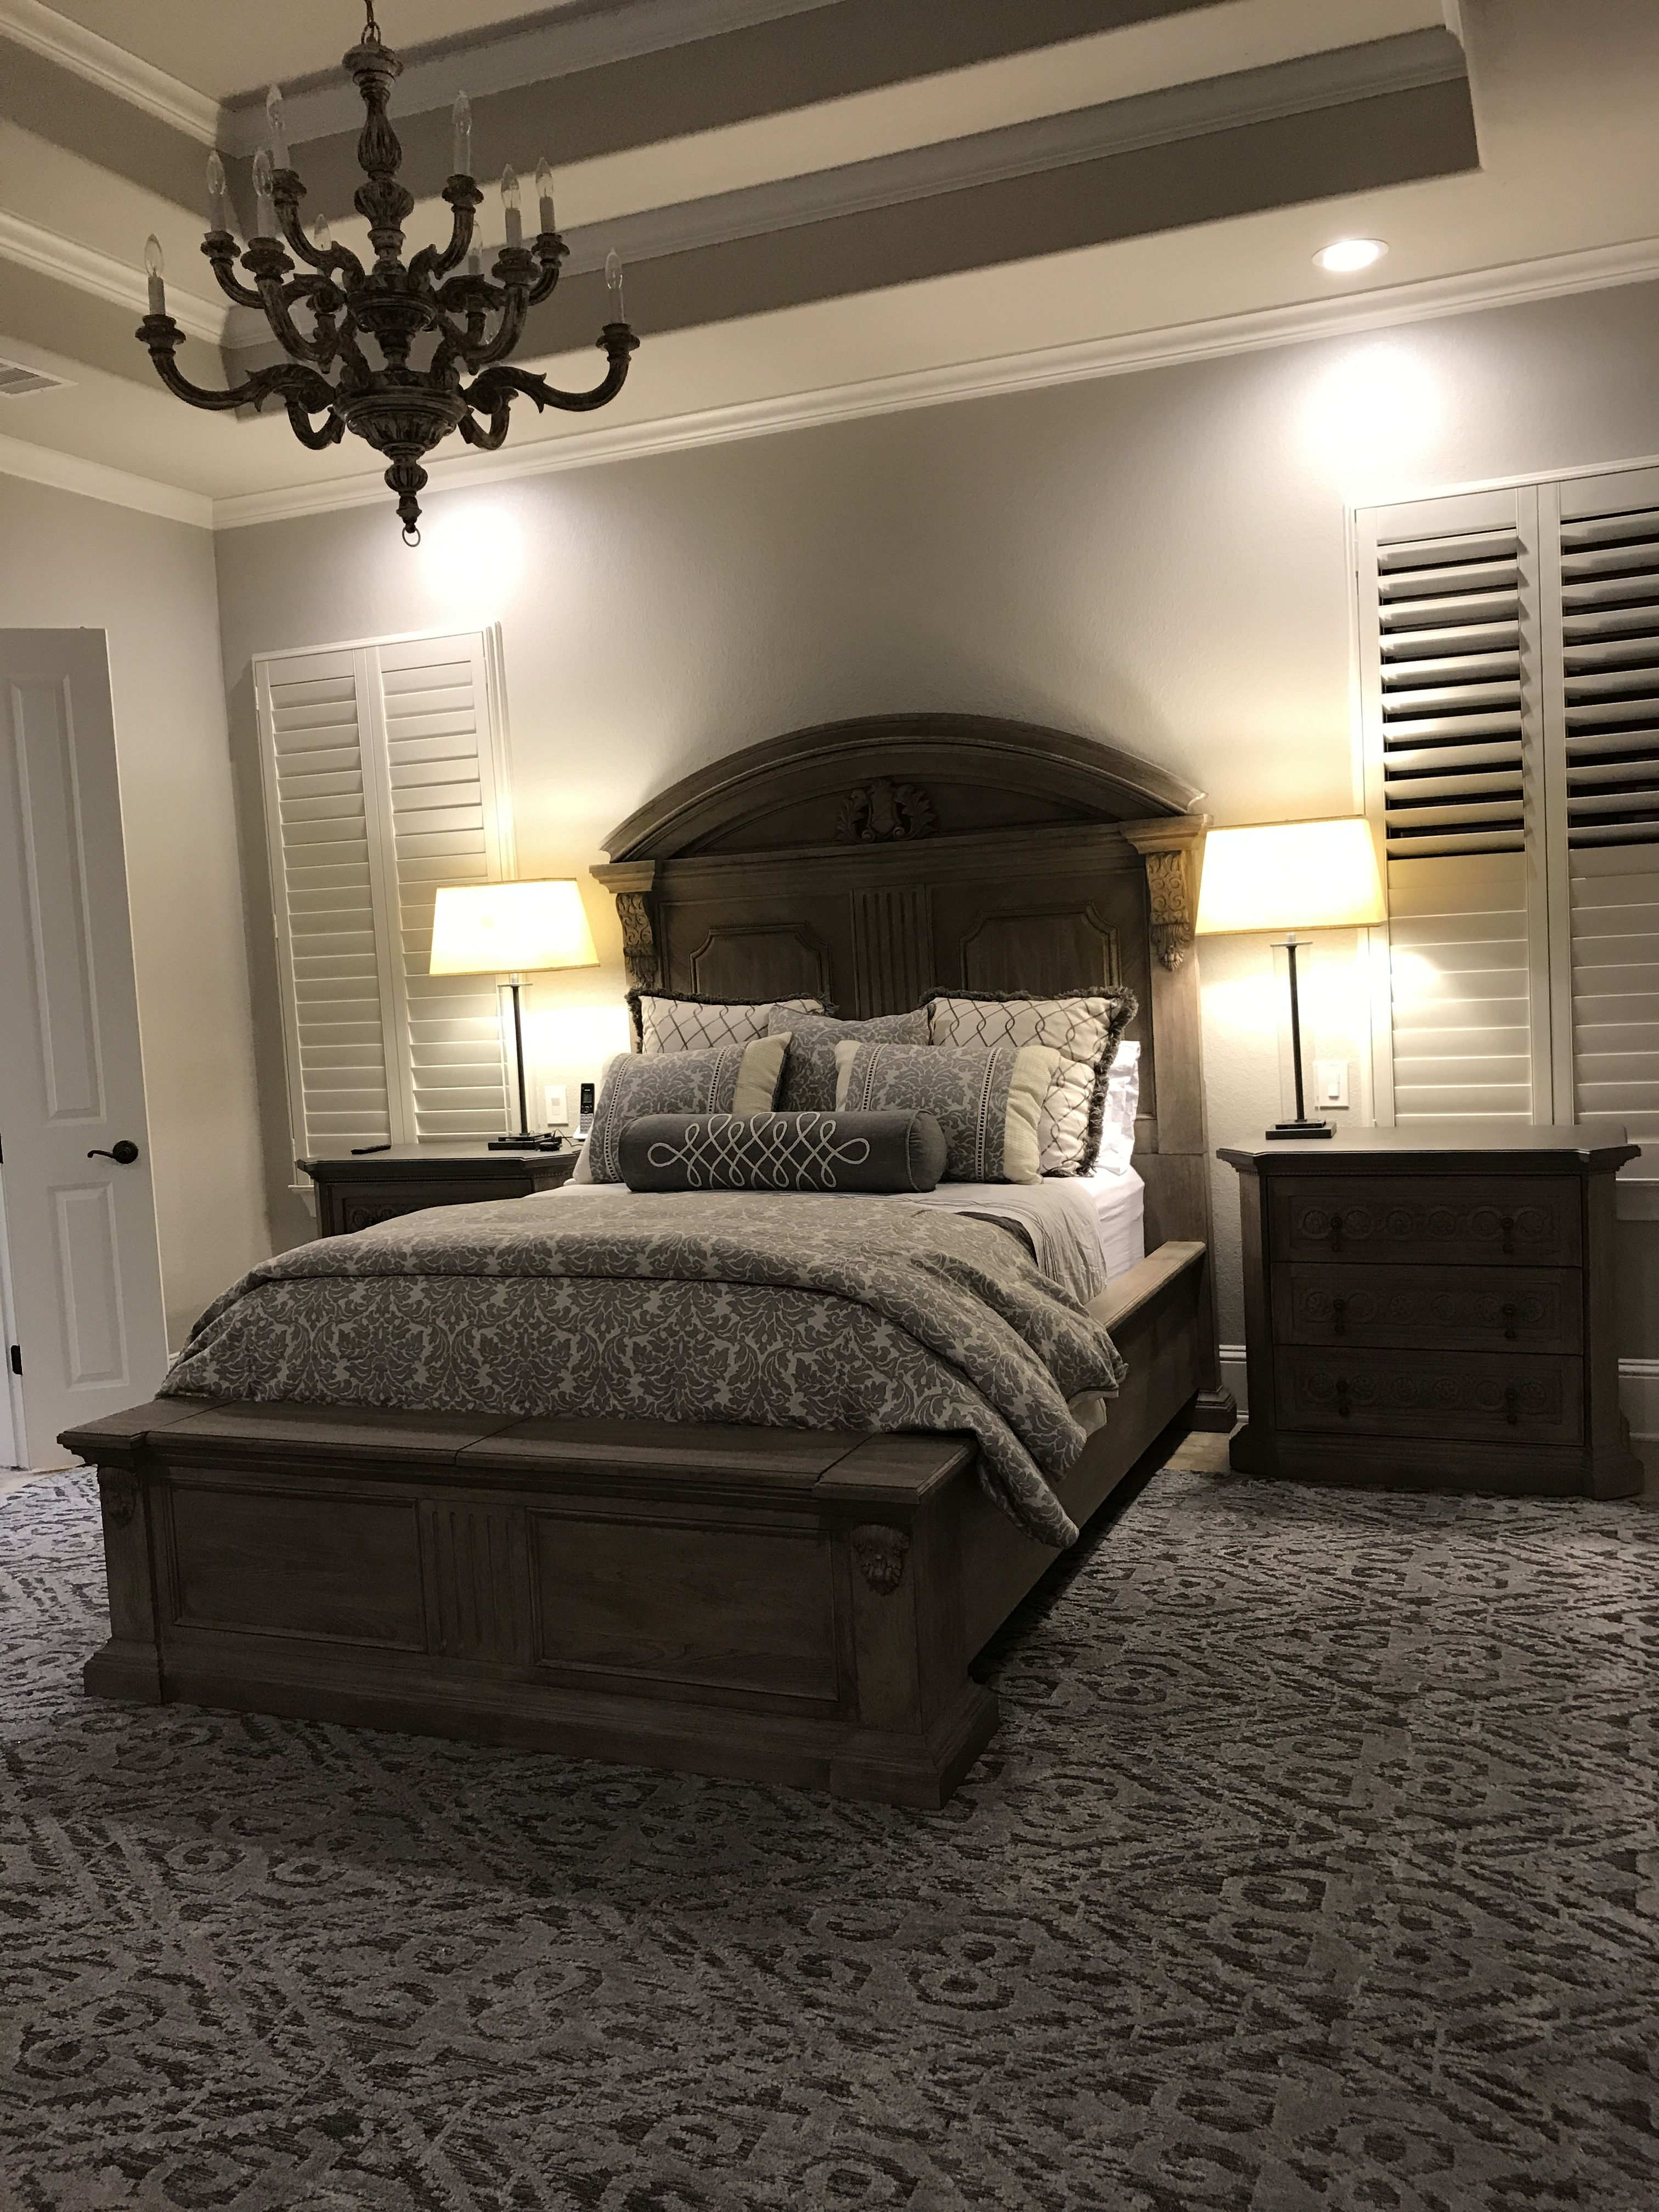 Master bedroom art  Master Bedroom ART Bedroom Furniture with Eastern Accents